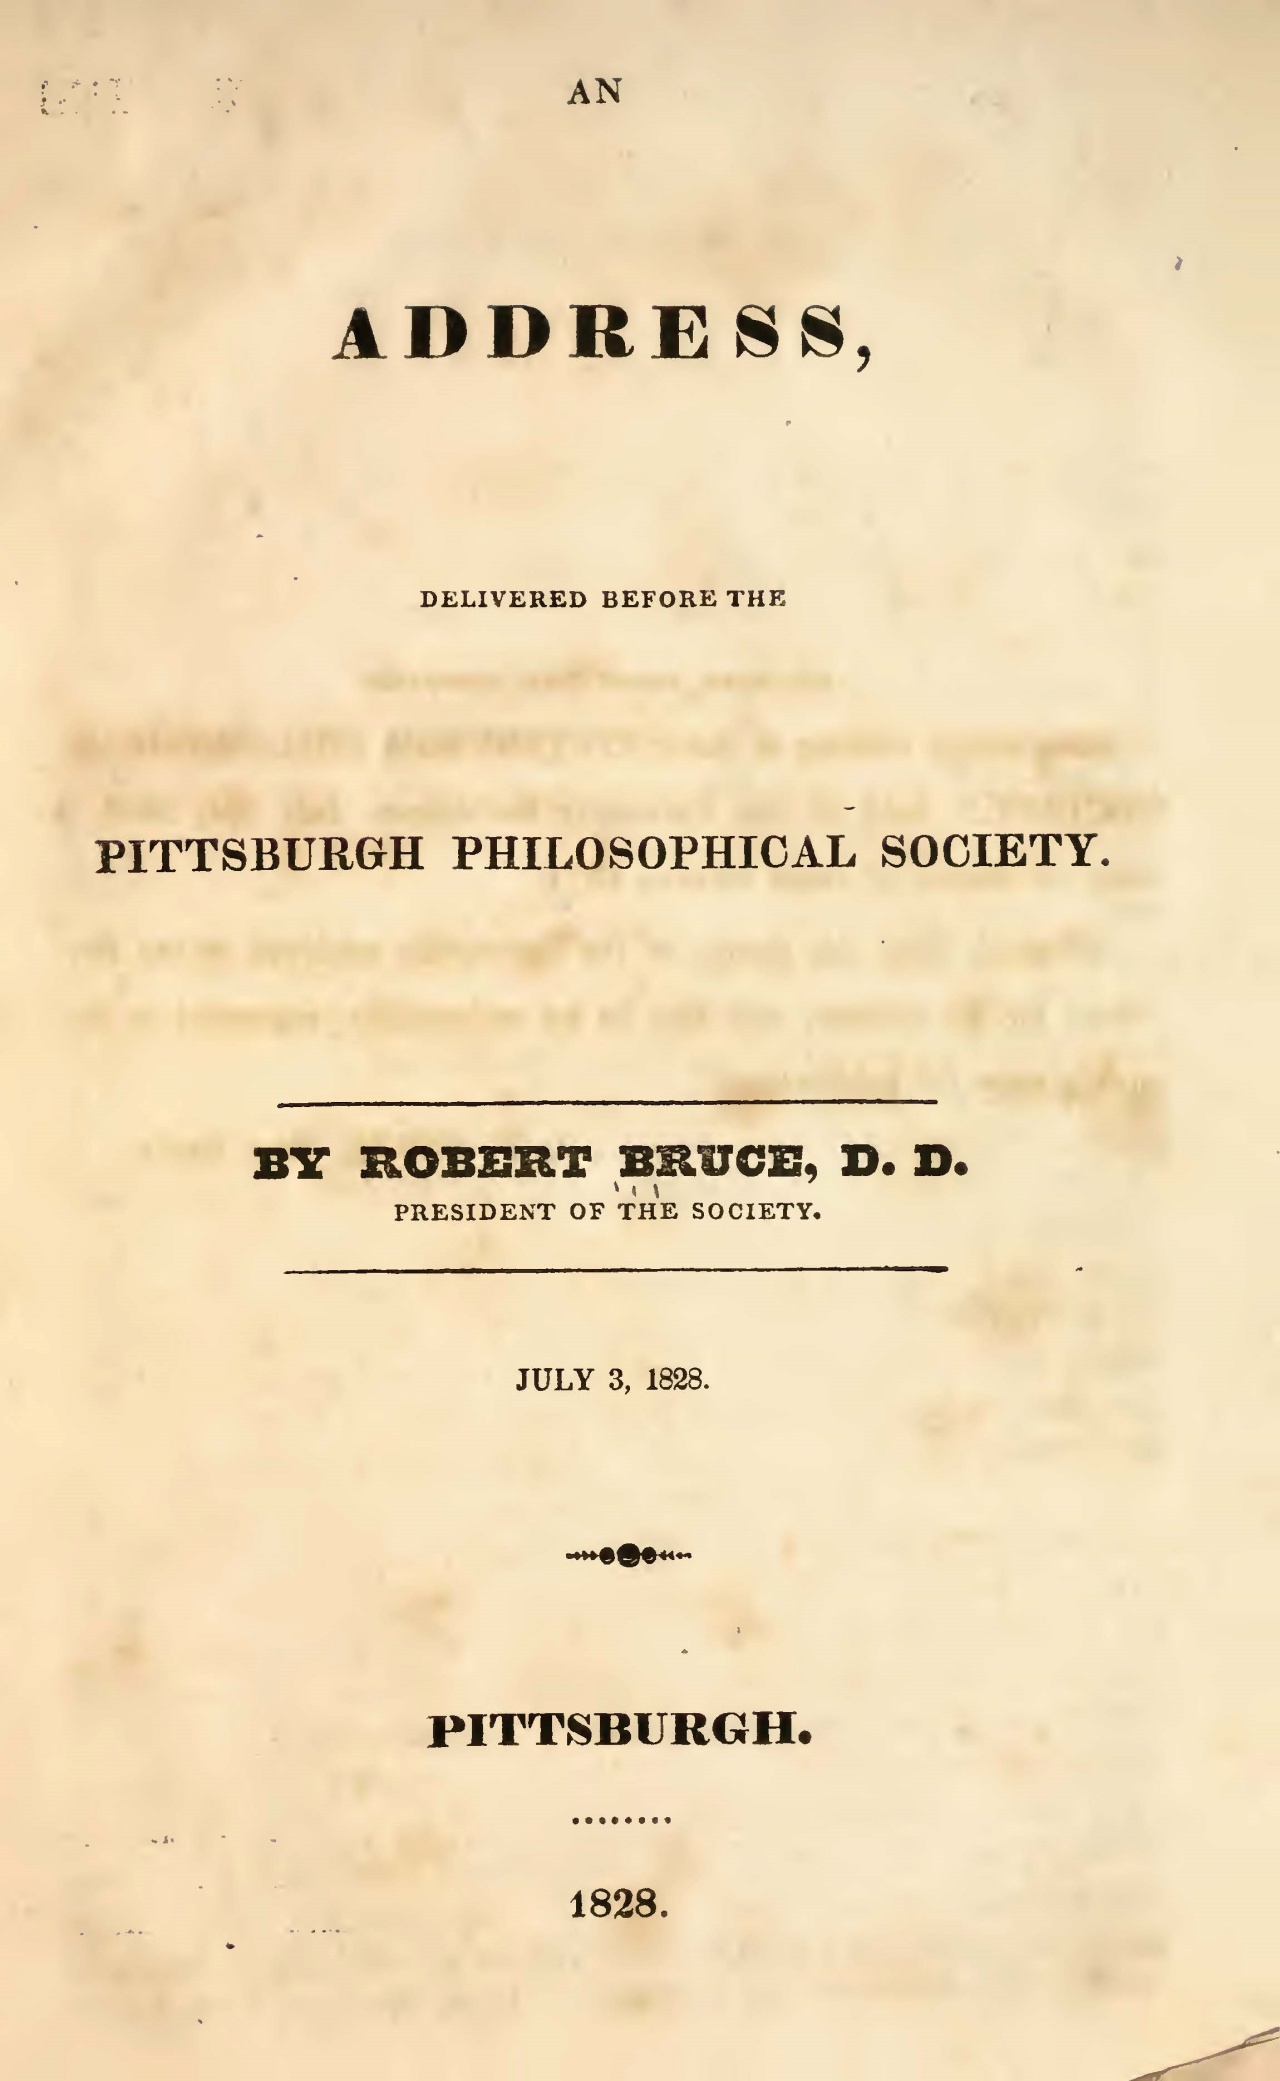 Bruce, Robert, An Address Delivered Before the Pittsburgh Philosophical Society Title Page.jpg